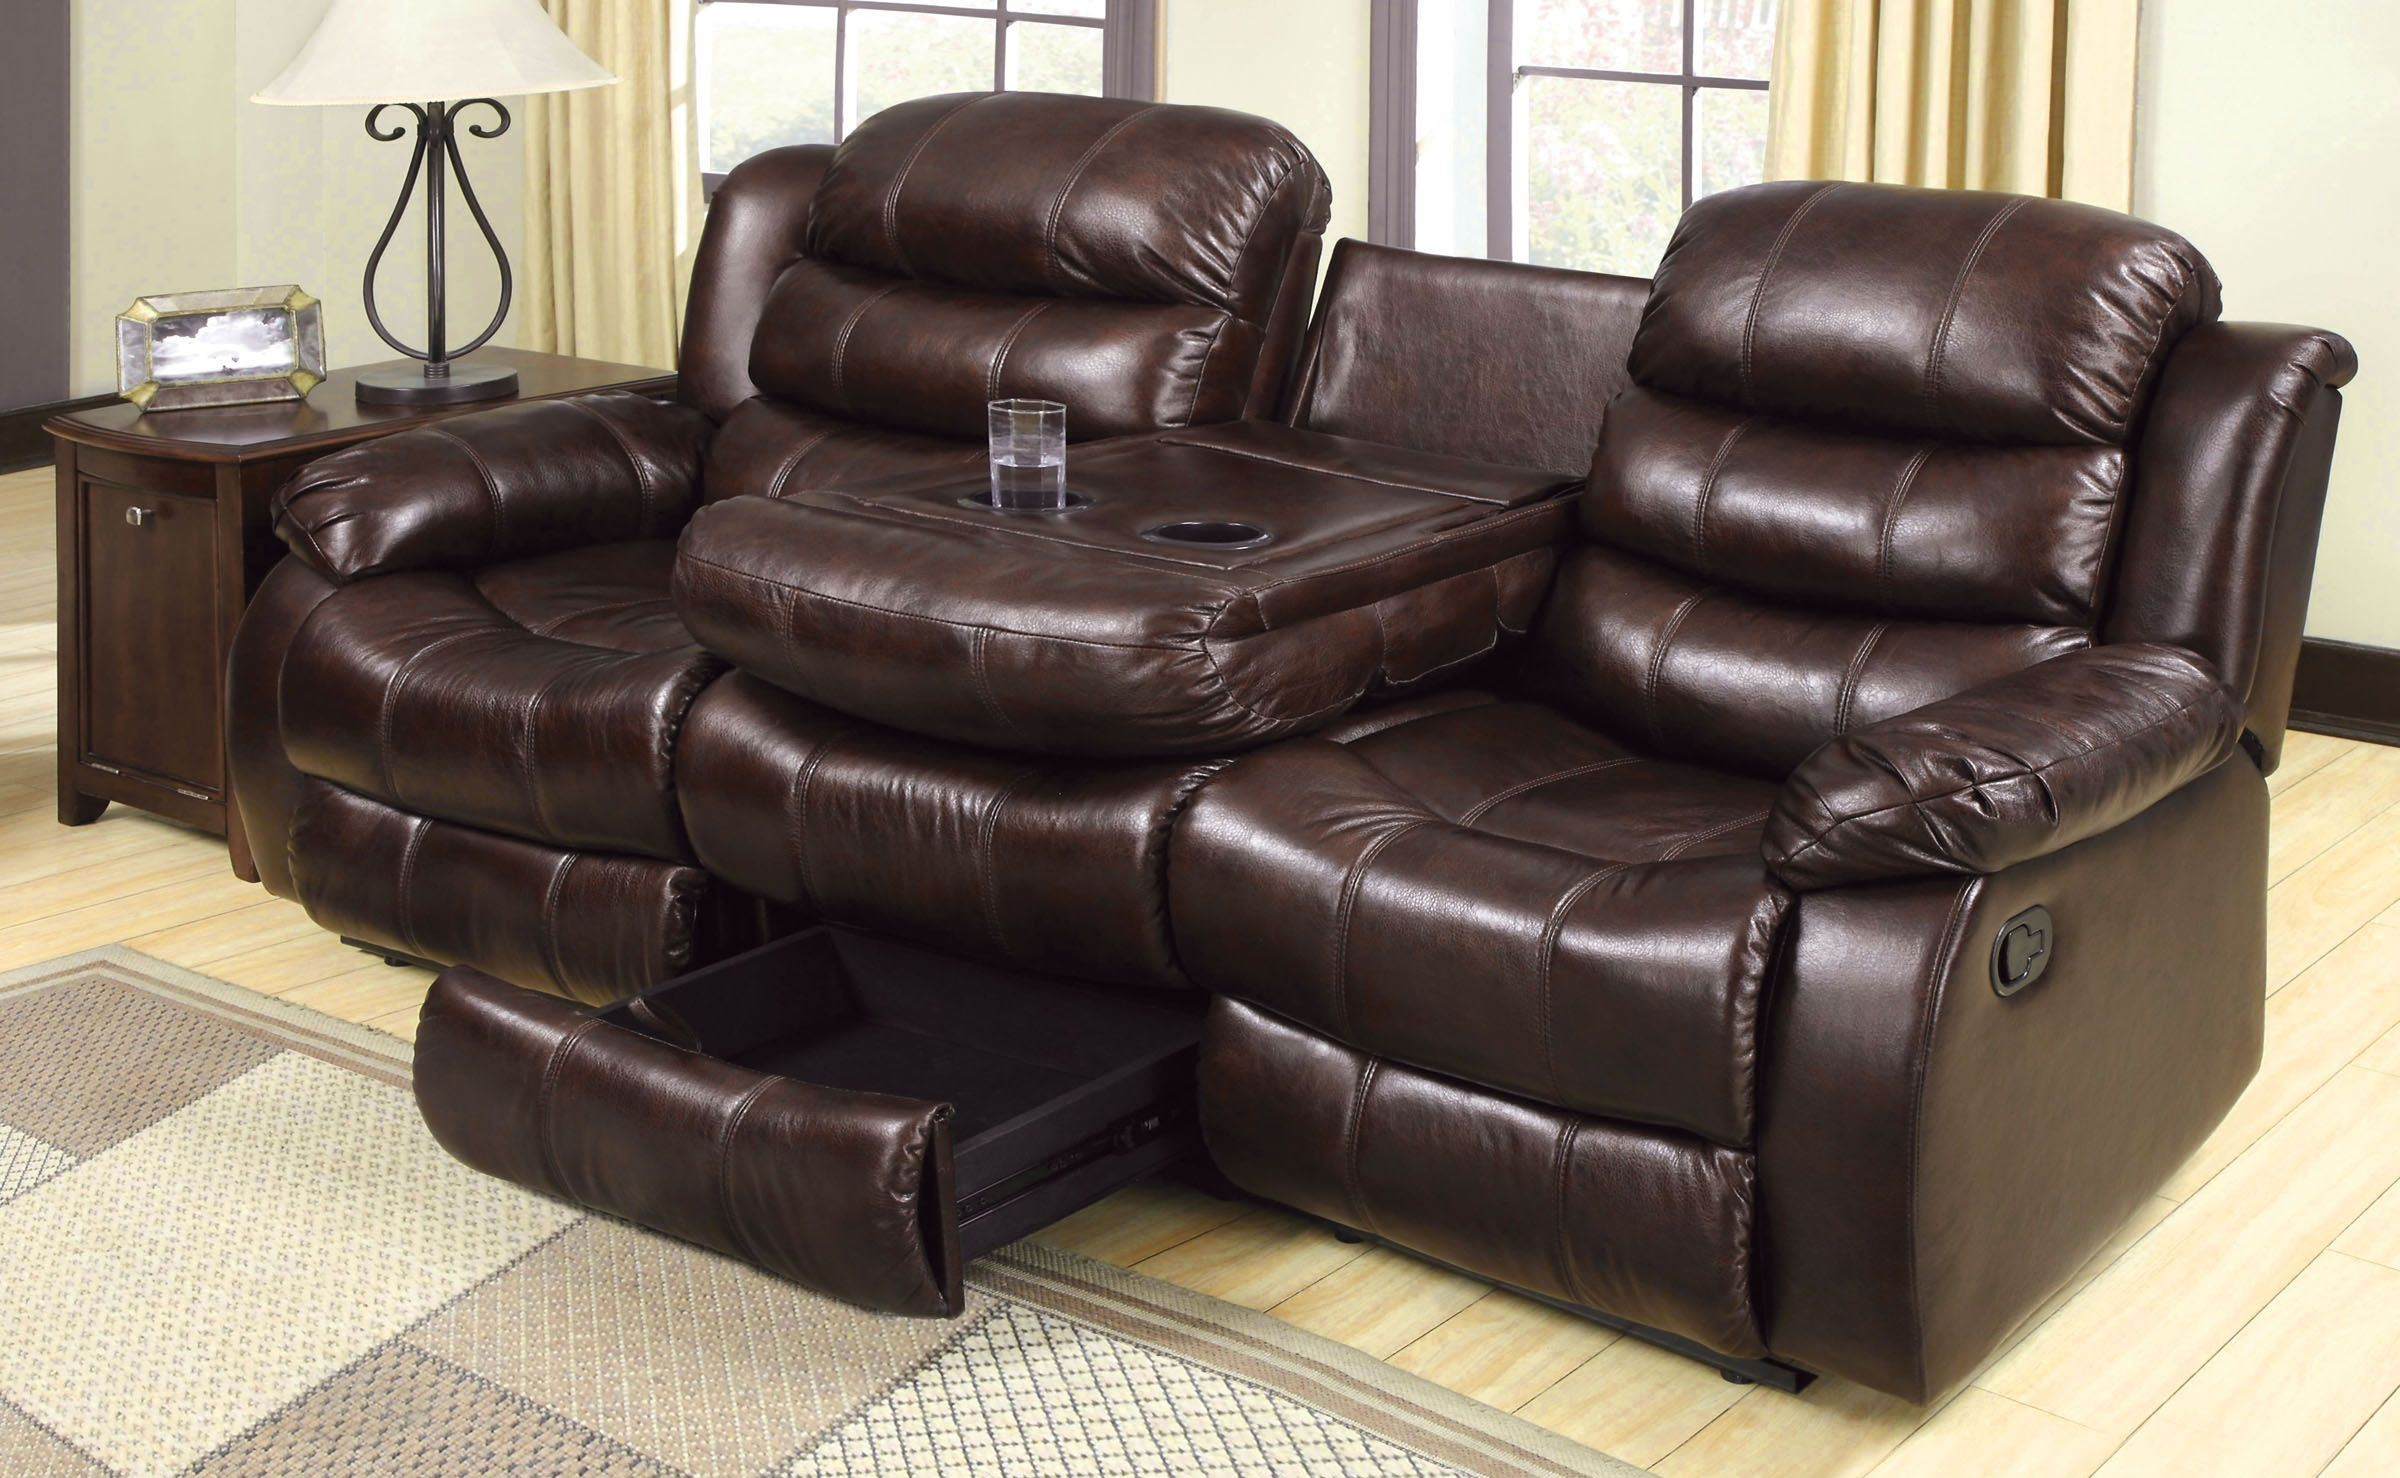 berkshire rustic brown reclining sofa with center console from furniture of america coleman. Black Bedroom Furniture Sets. Home Design Ideas